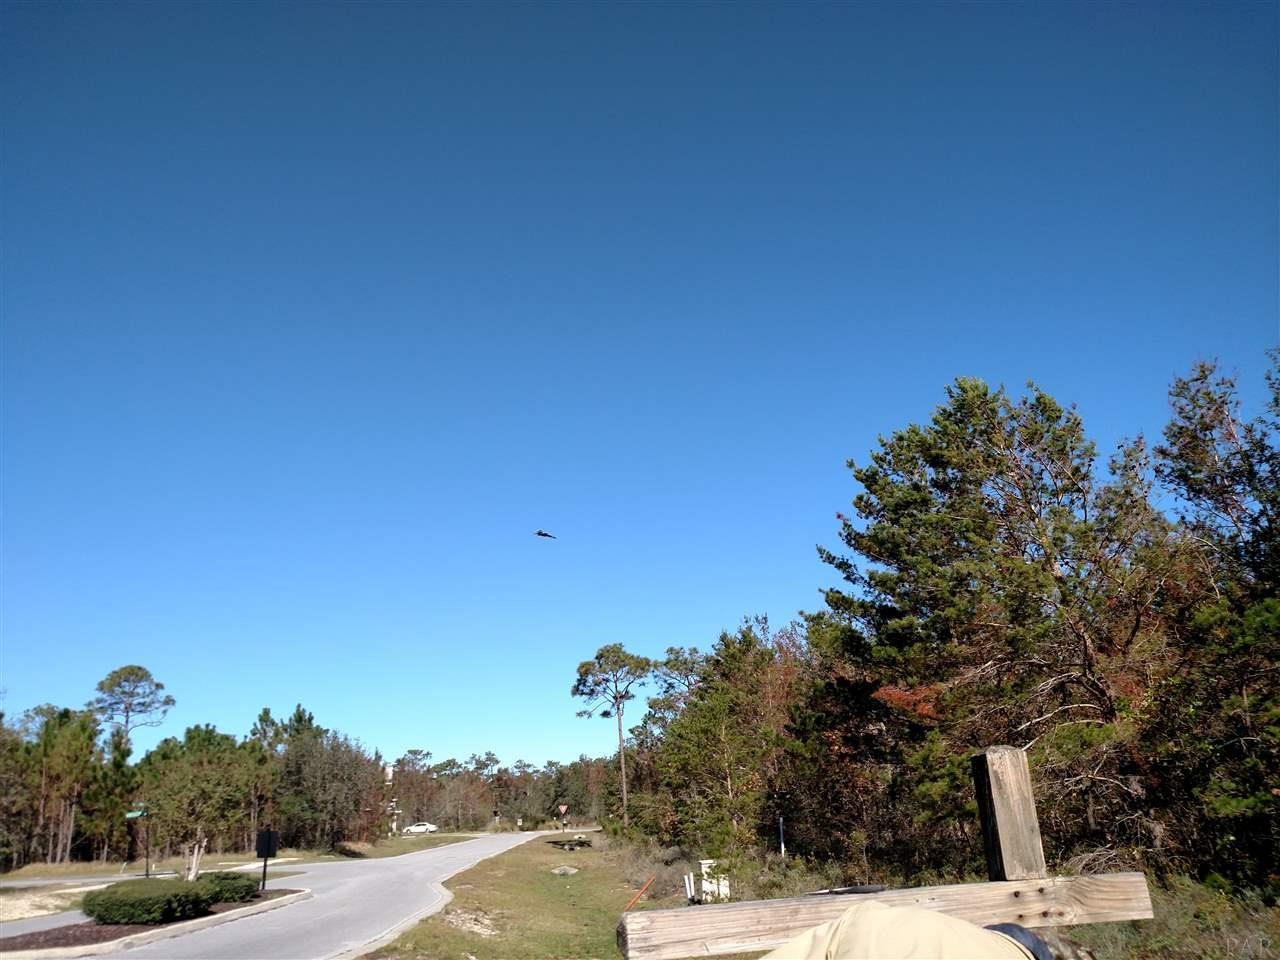 561 Downhaul Dr, Pensacola FL 32507 - Photo 2